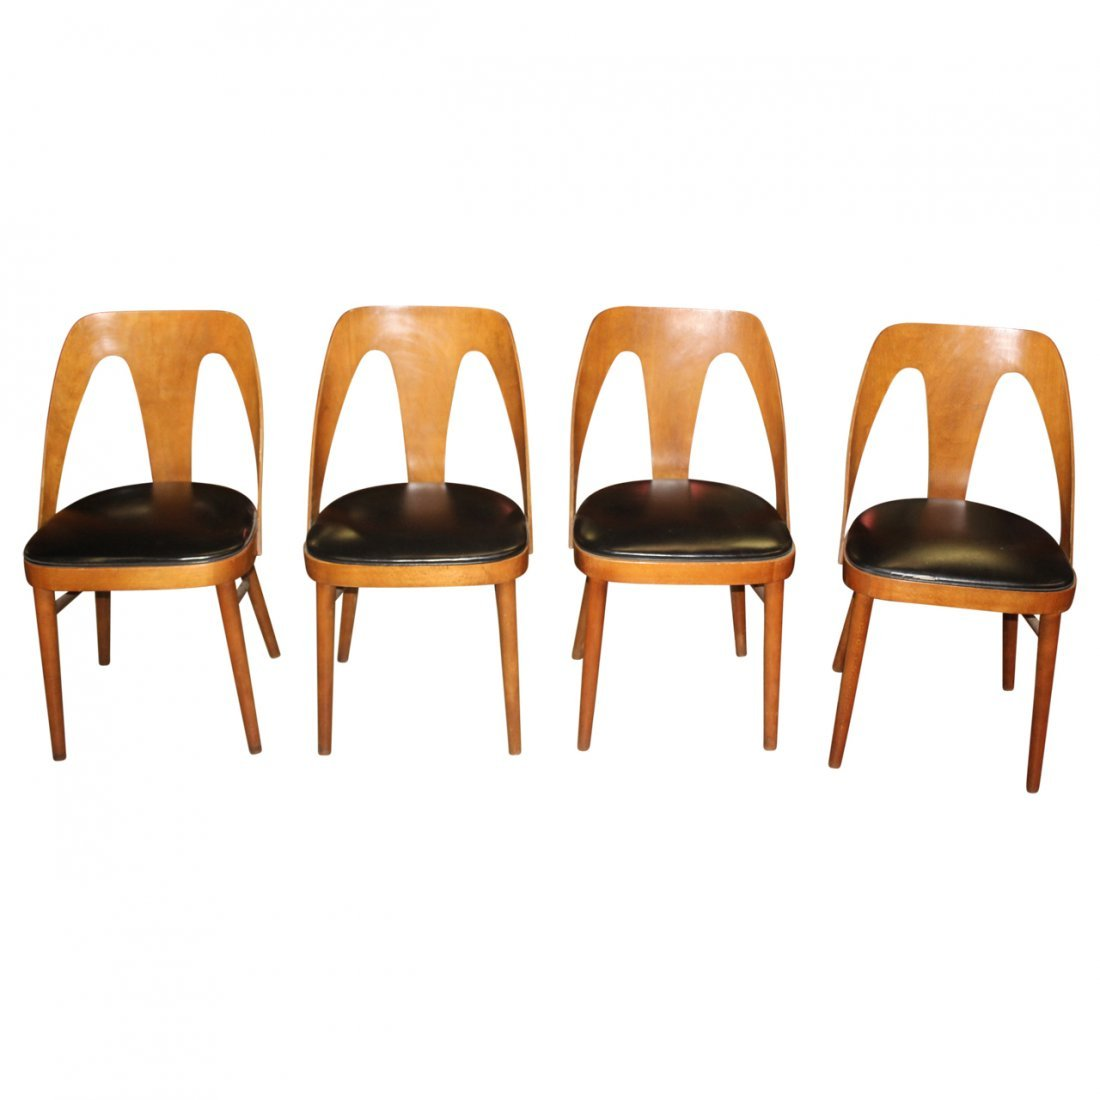 4 MCM Chairs Attributed to Lawrence Peabody